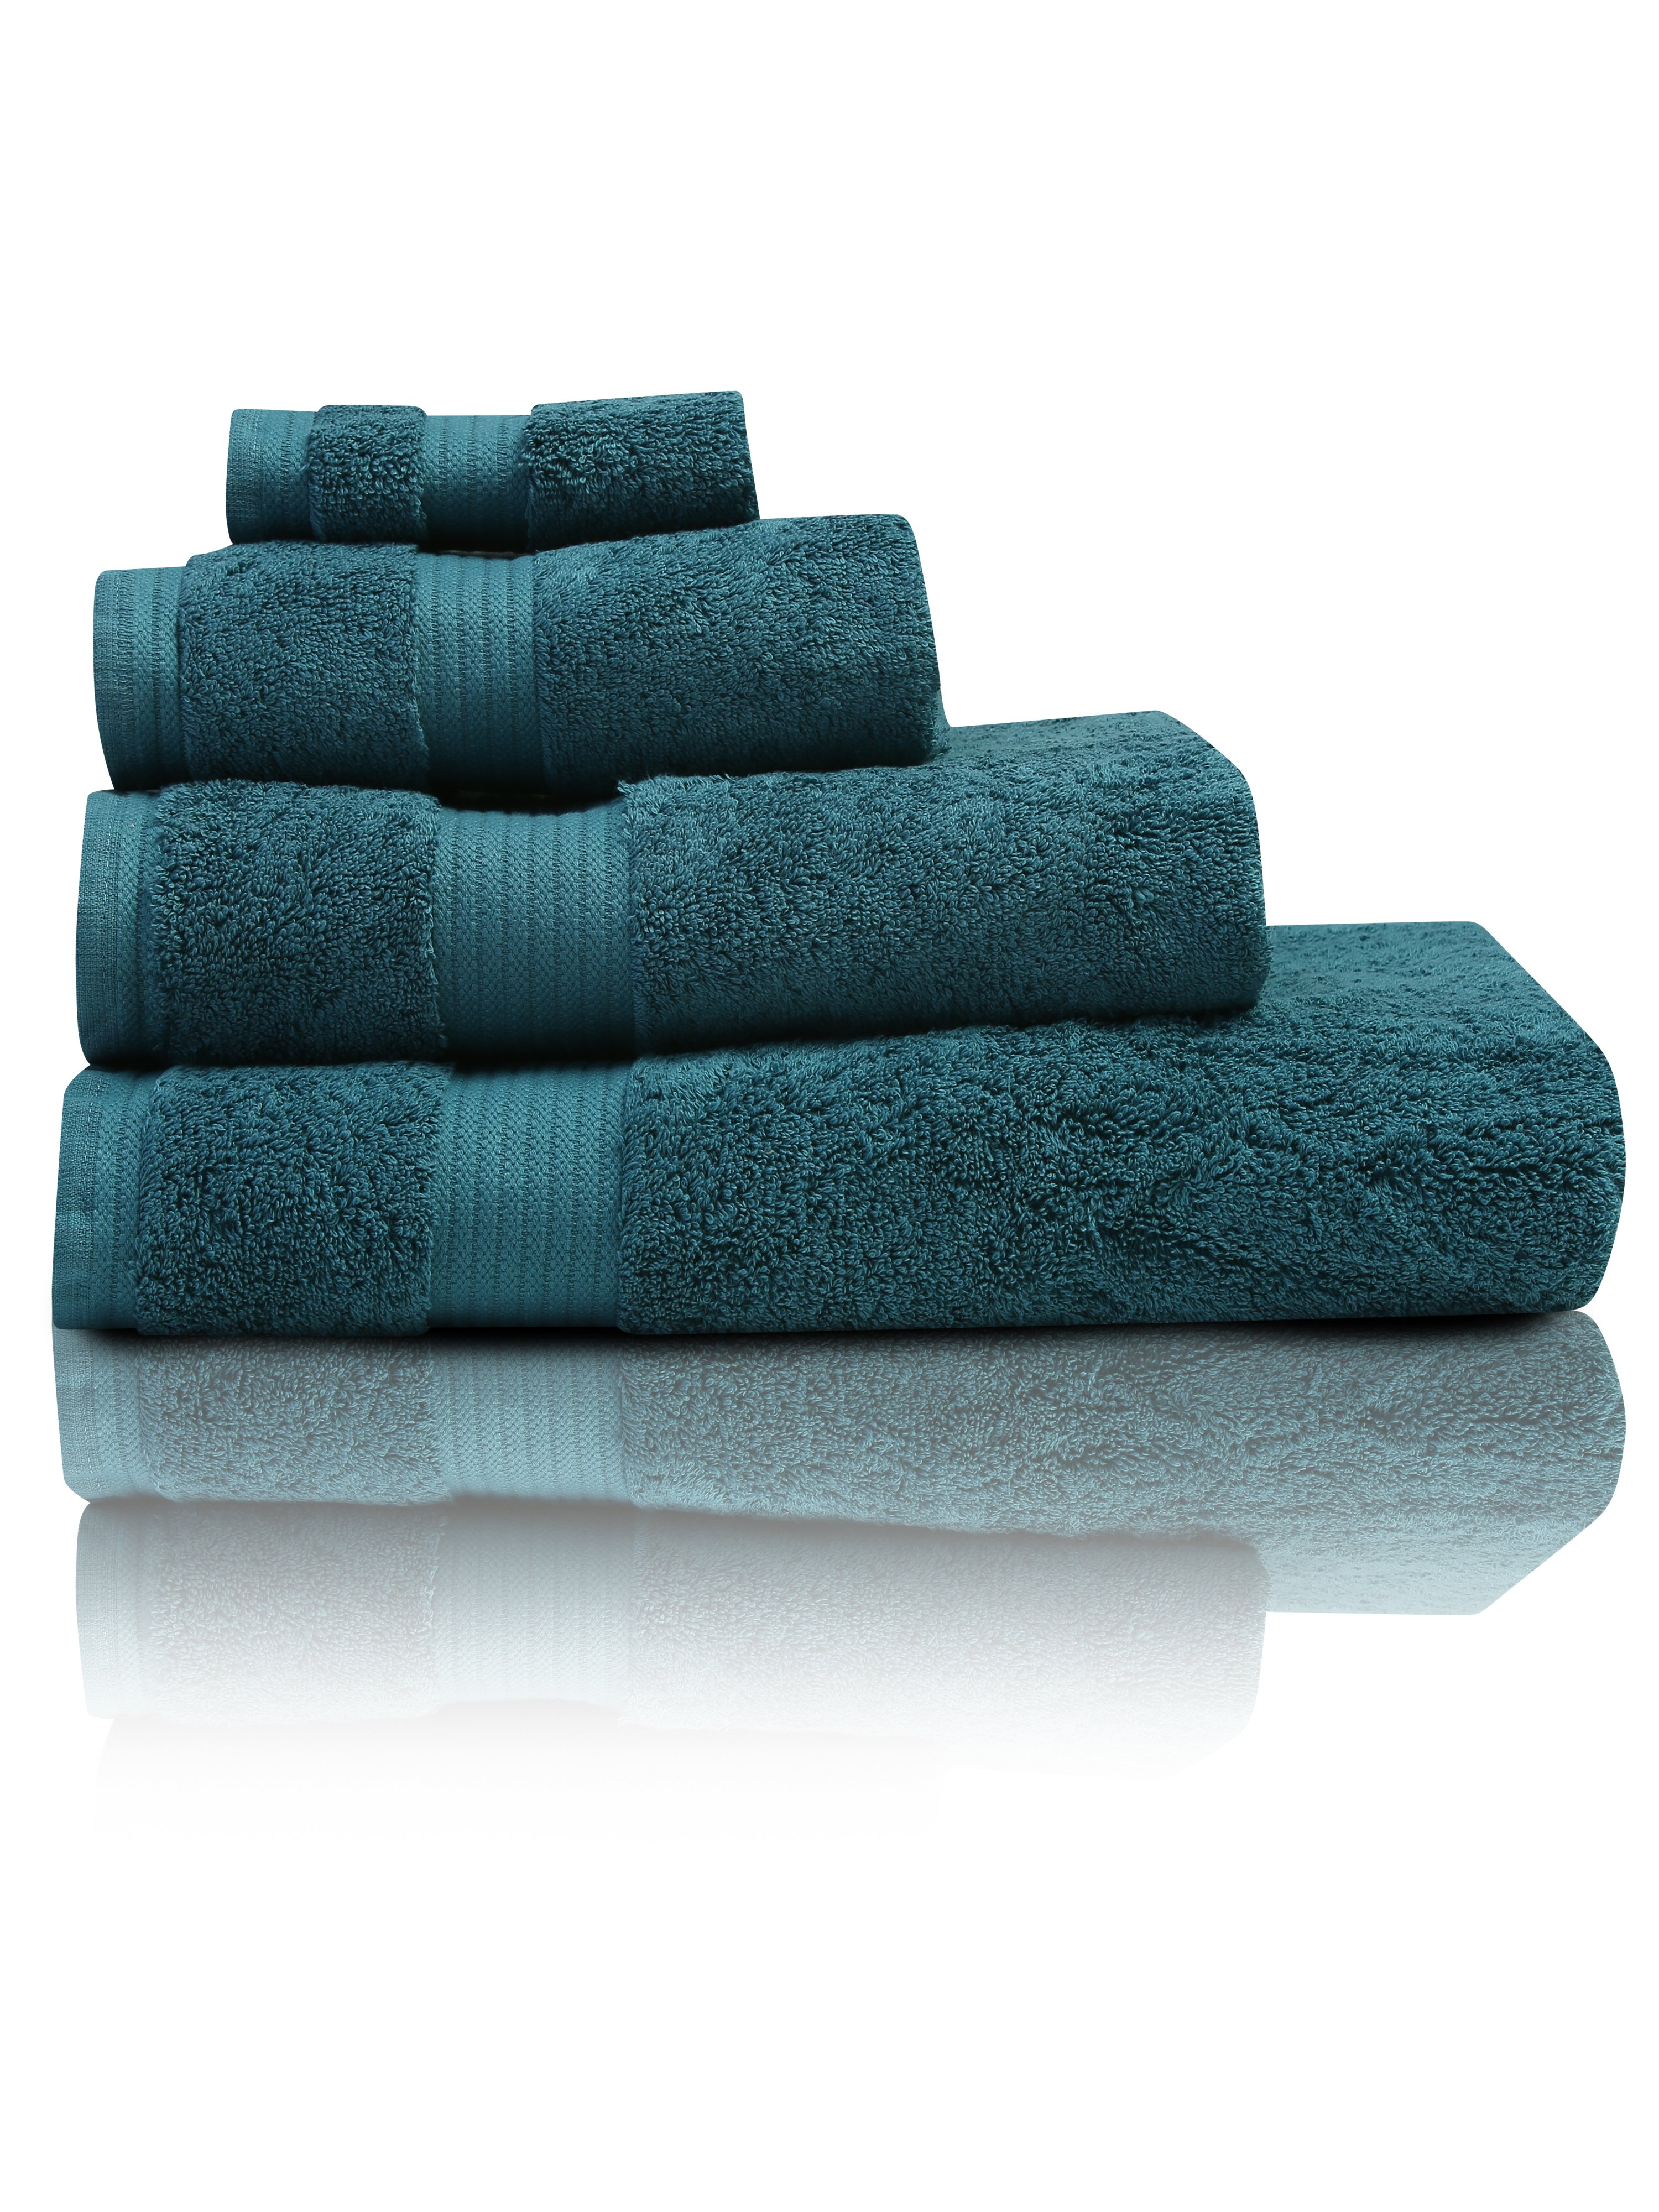 Teal Combed Cotton Towels